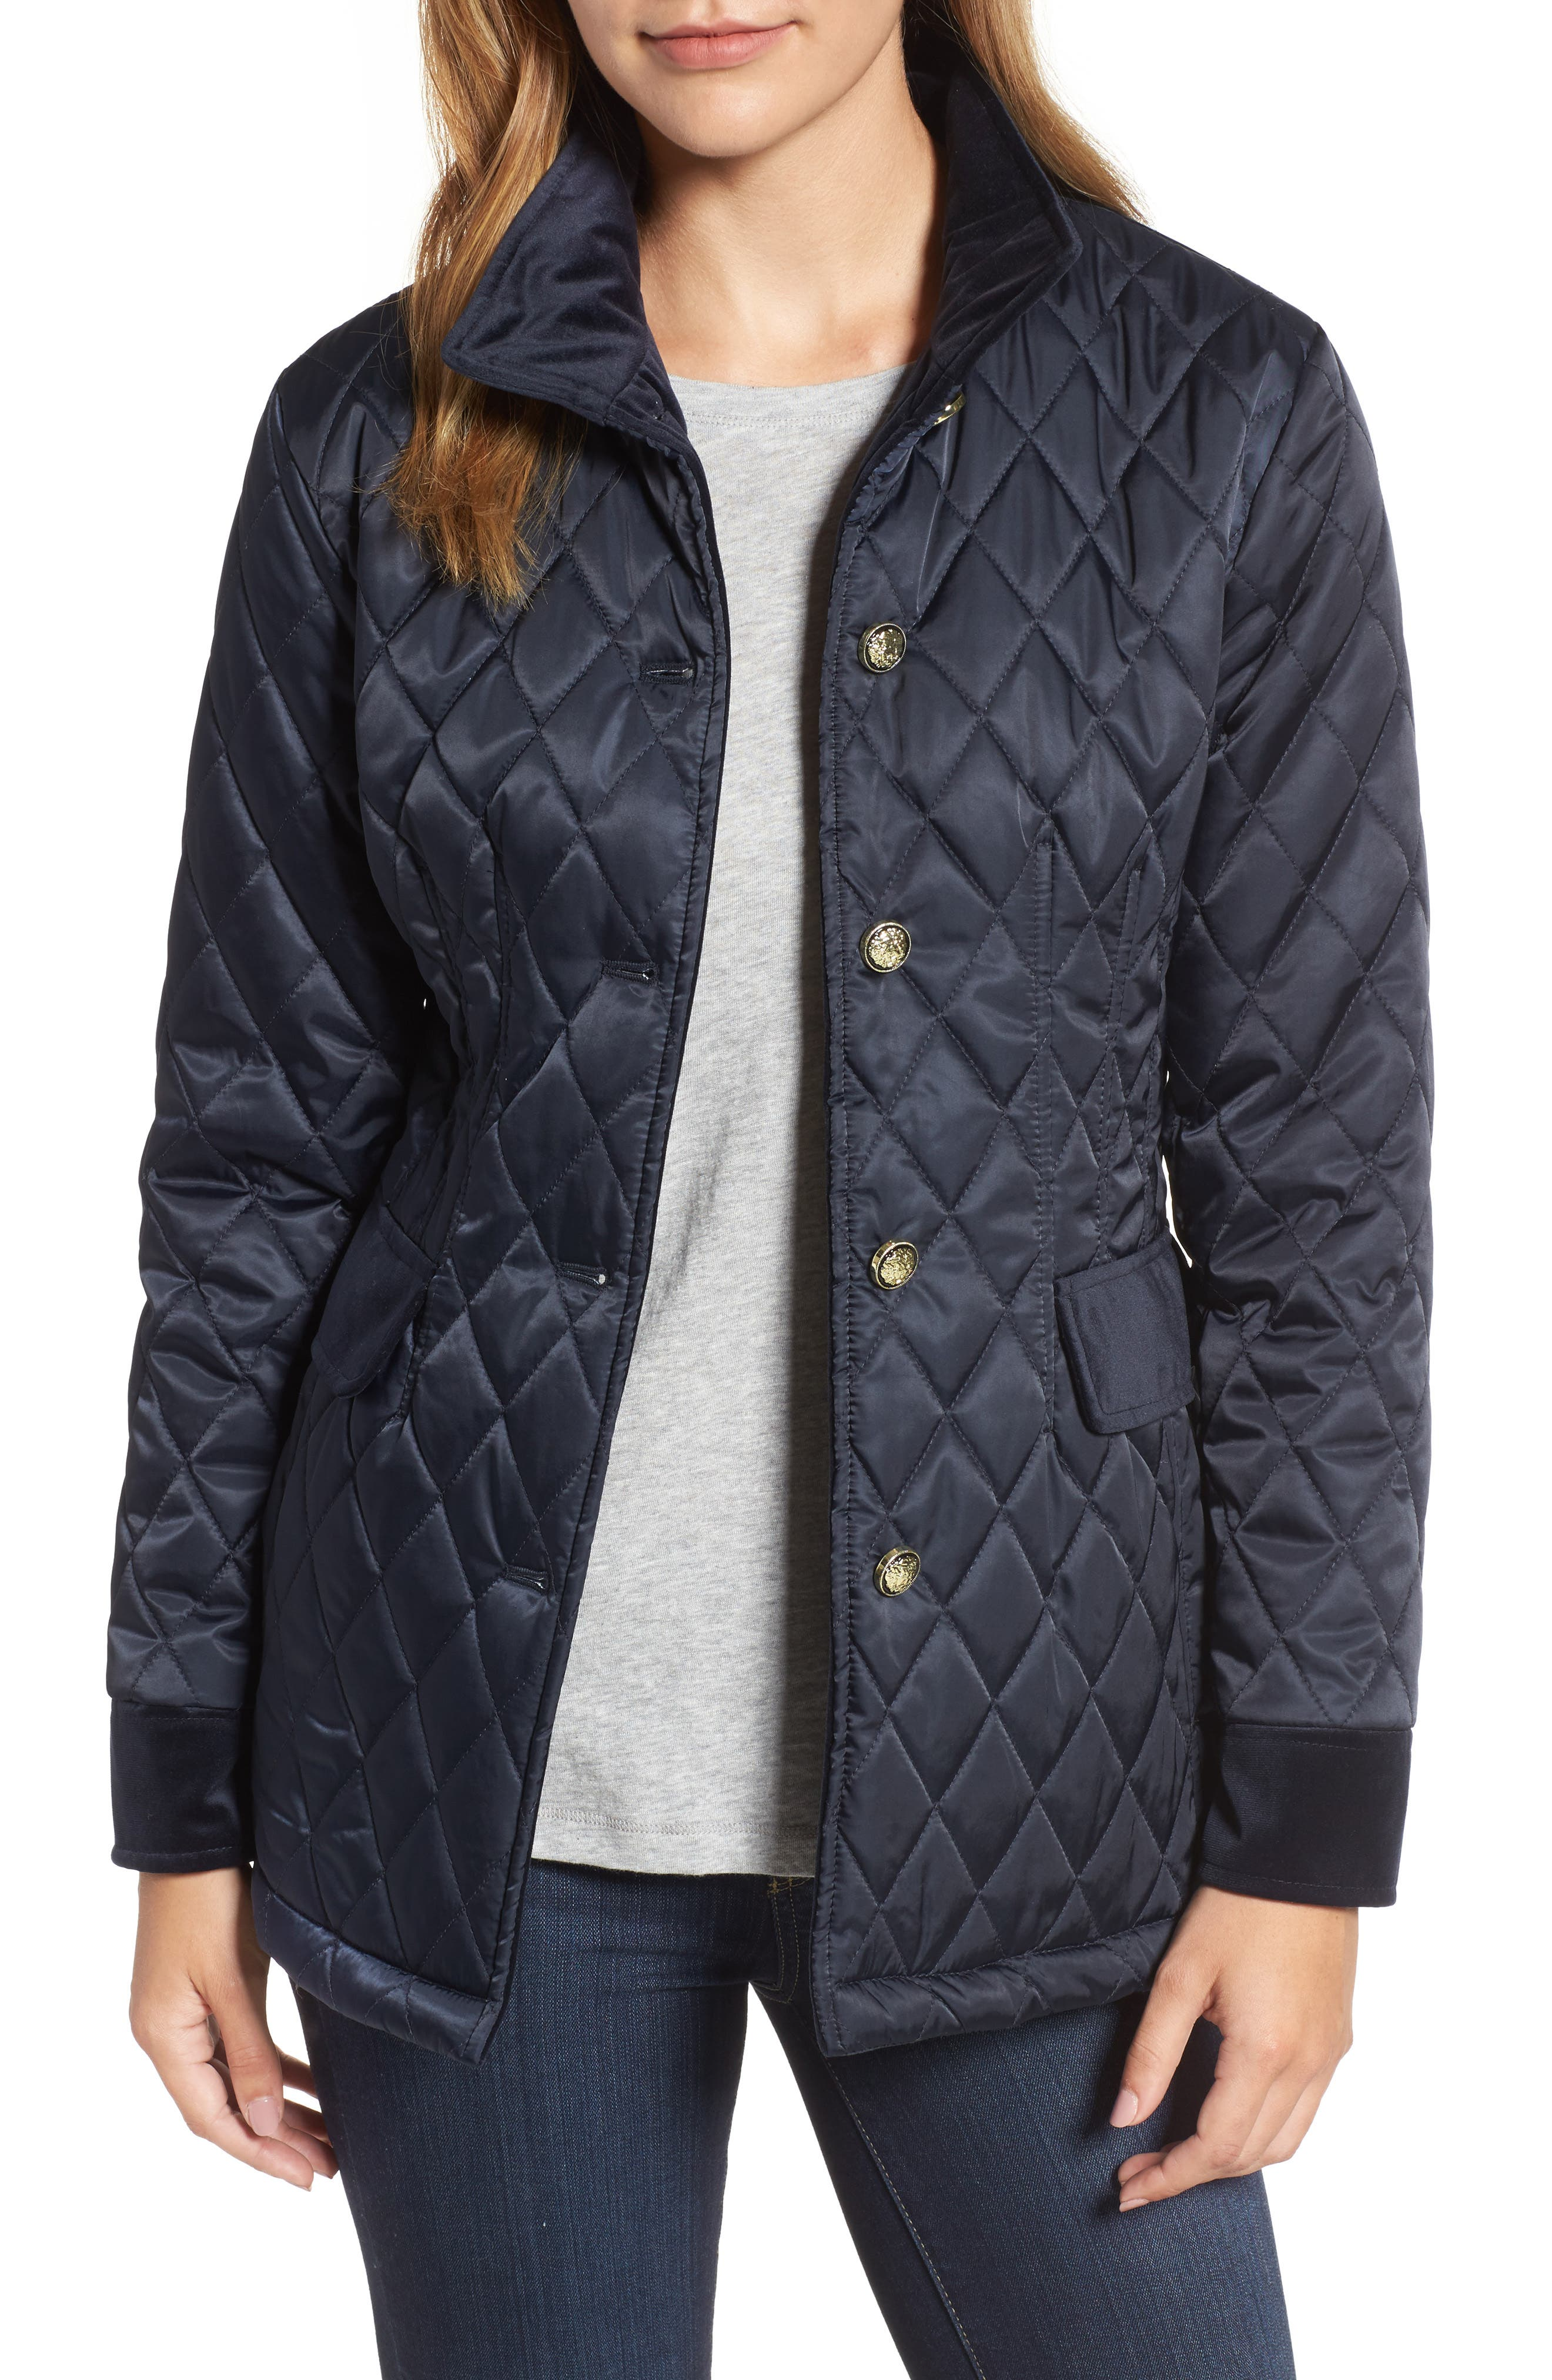 Vince Camuto Quilted Jakcet